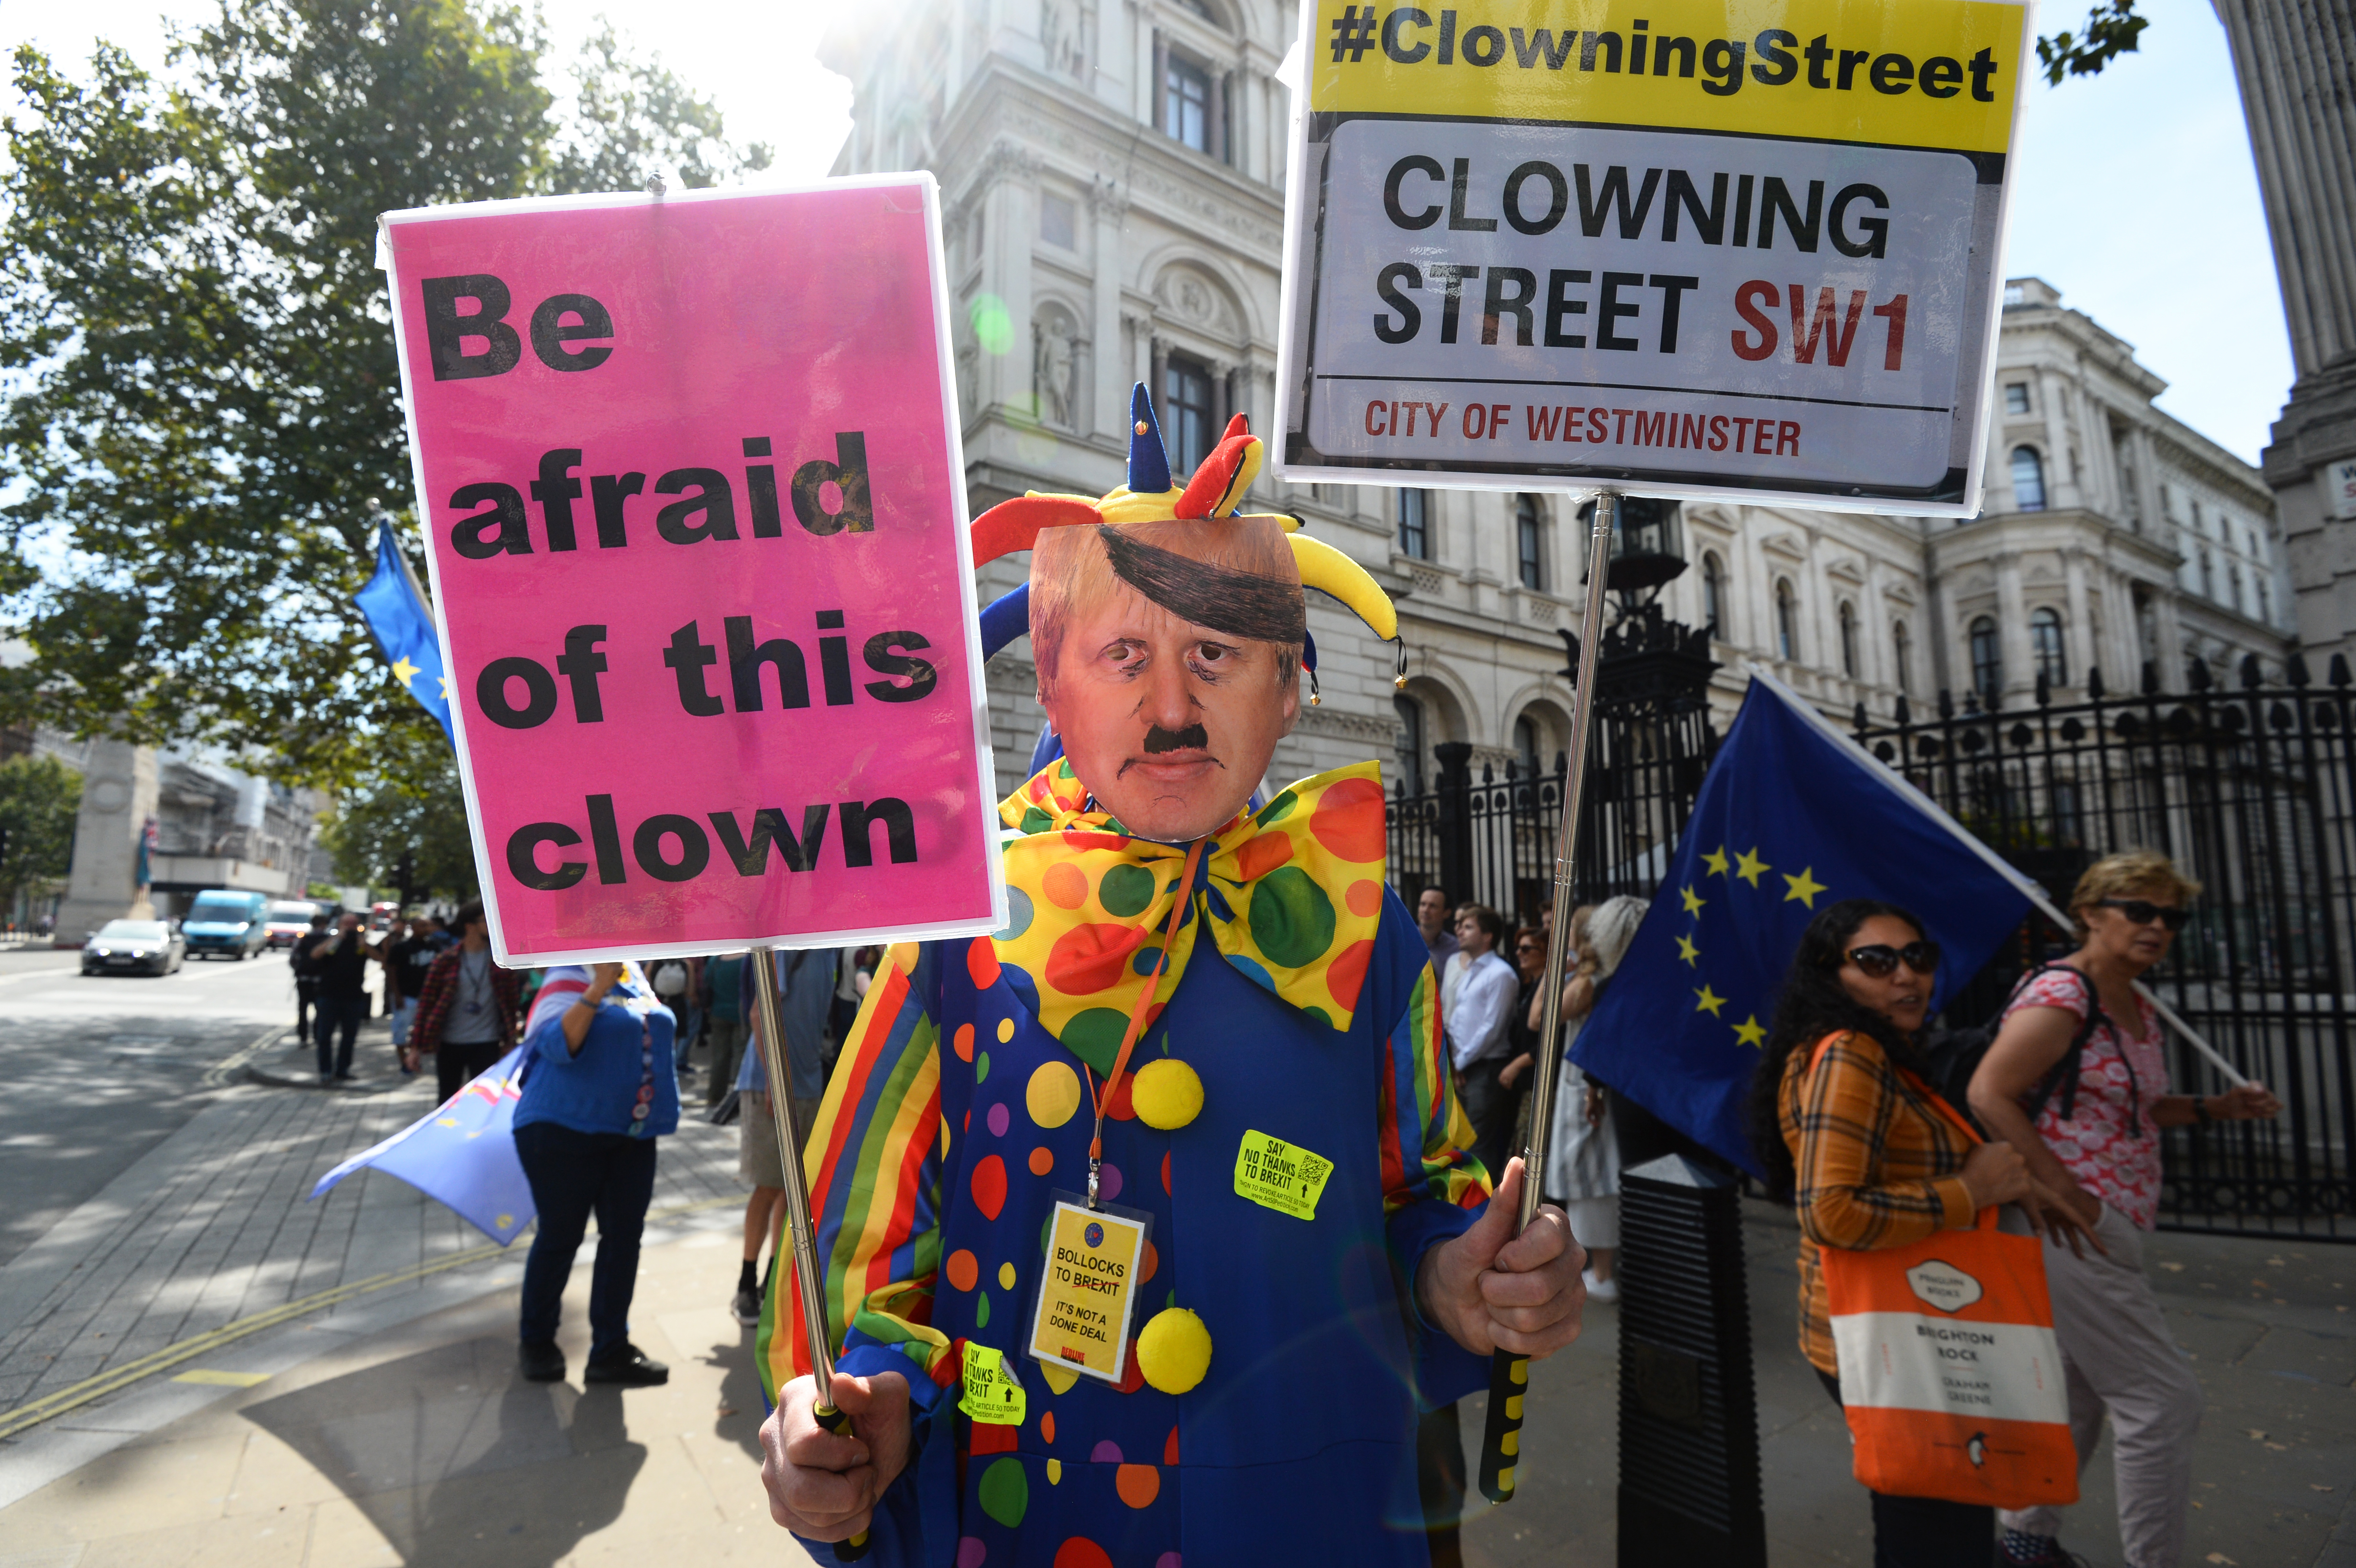 A Brexit protester in Westminster, London.